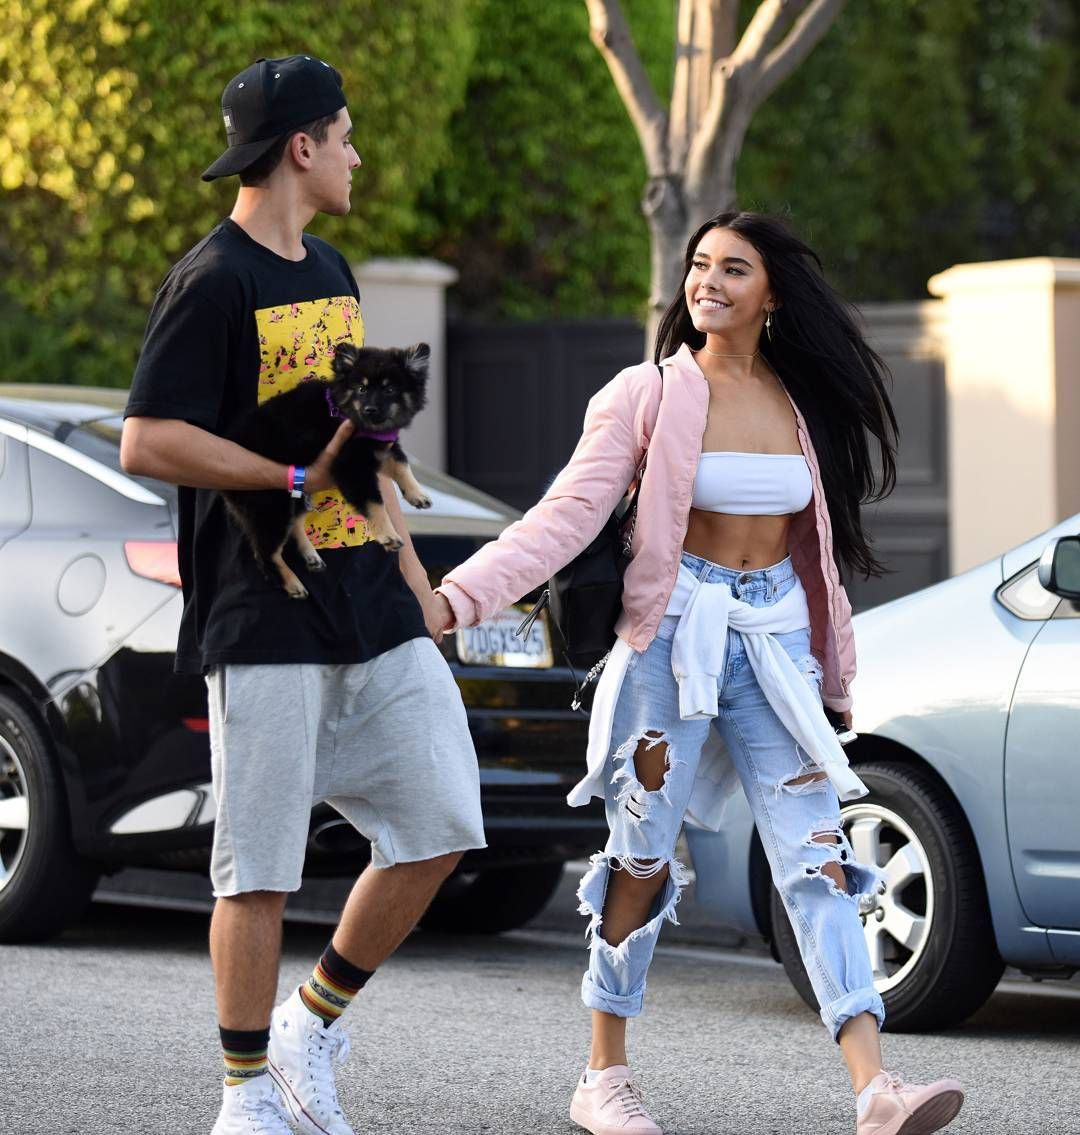 e4c613b63aa4 Madison Beer - Leaving a House Party in Beverly Hills three days ago!   MadisonBeer (August 27th